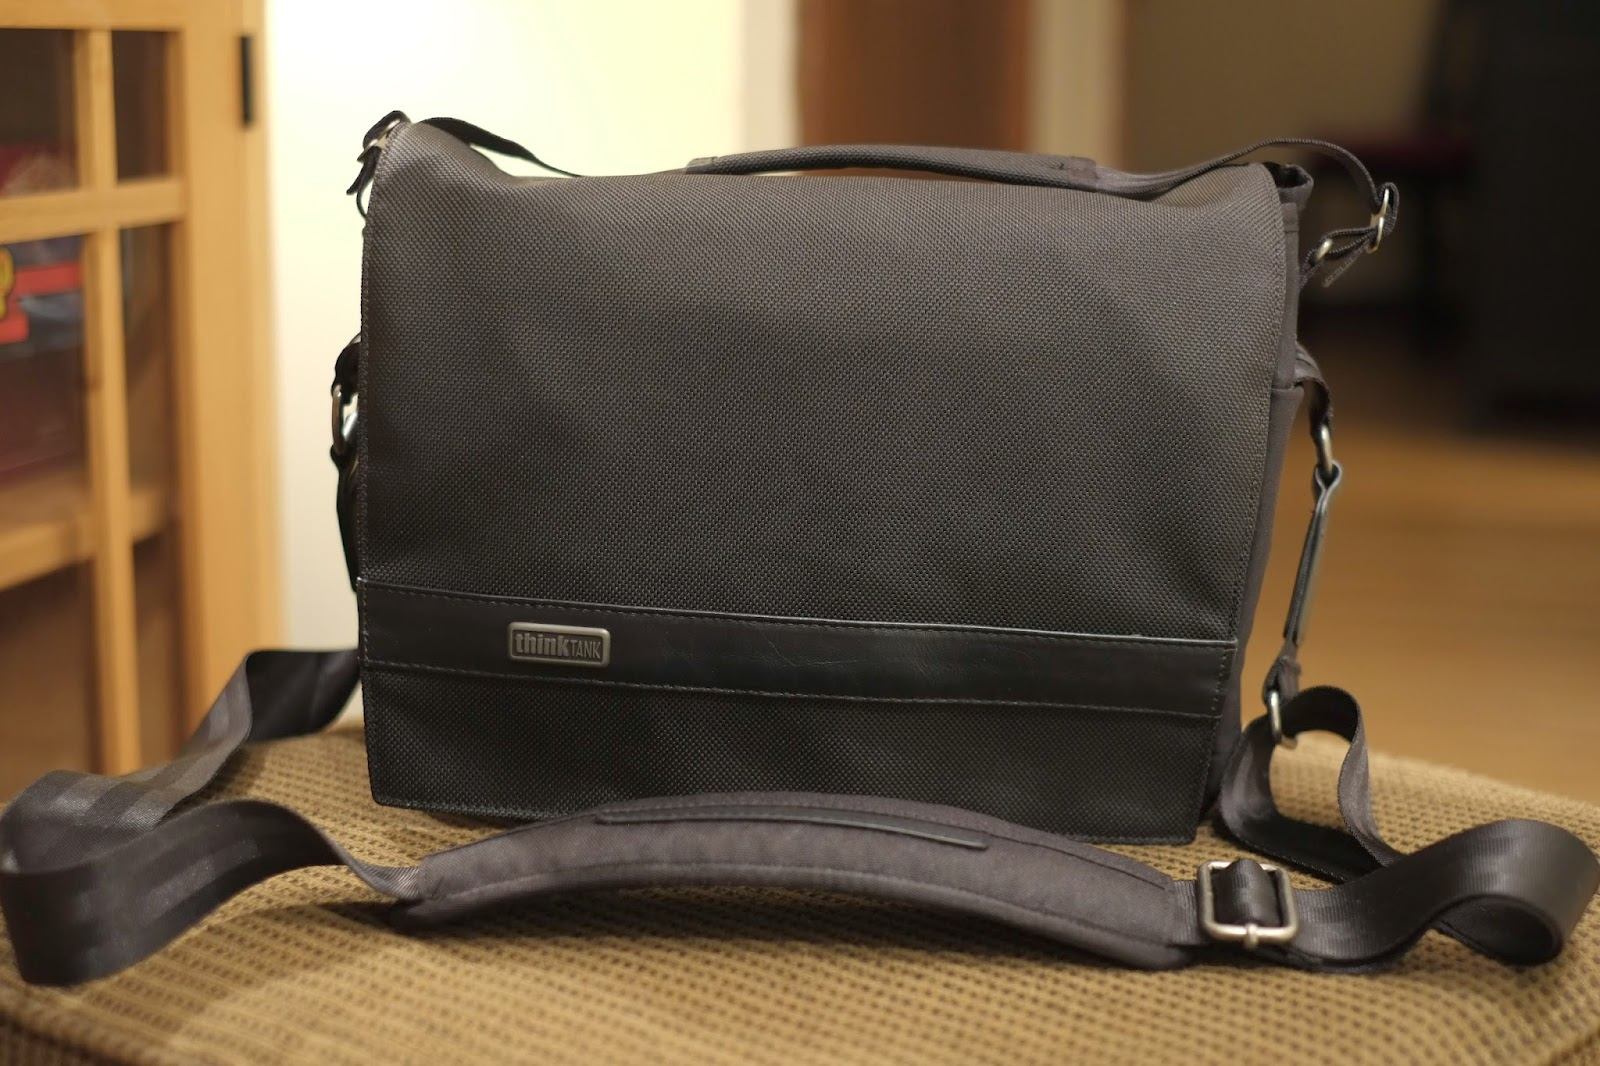 Think Tank Urban Approach 10 Review - Camera bag ~ Crossover Day ...